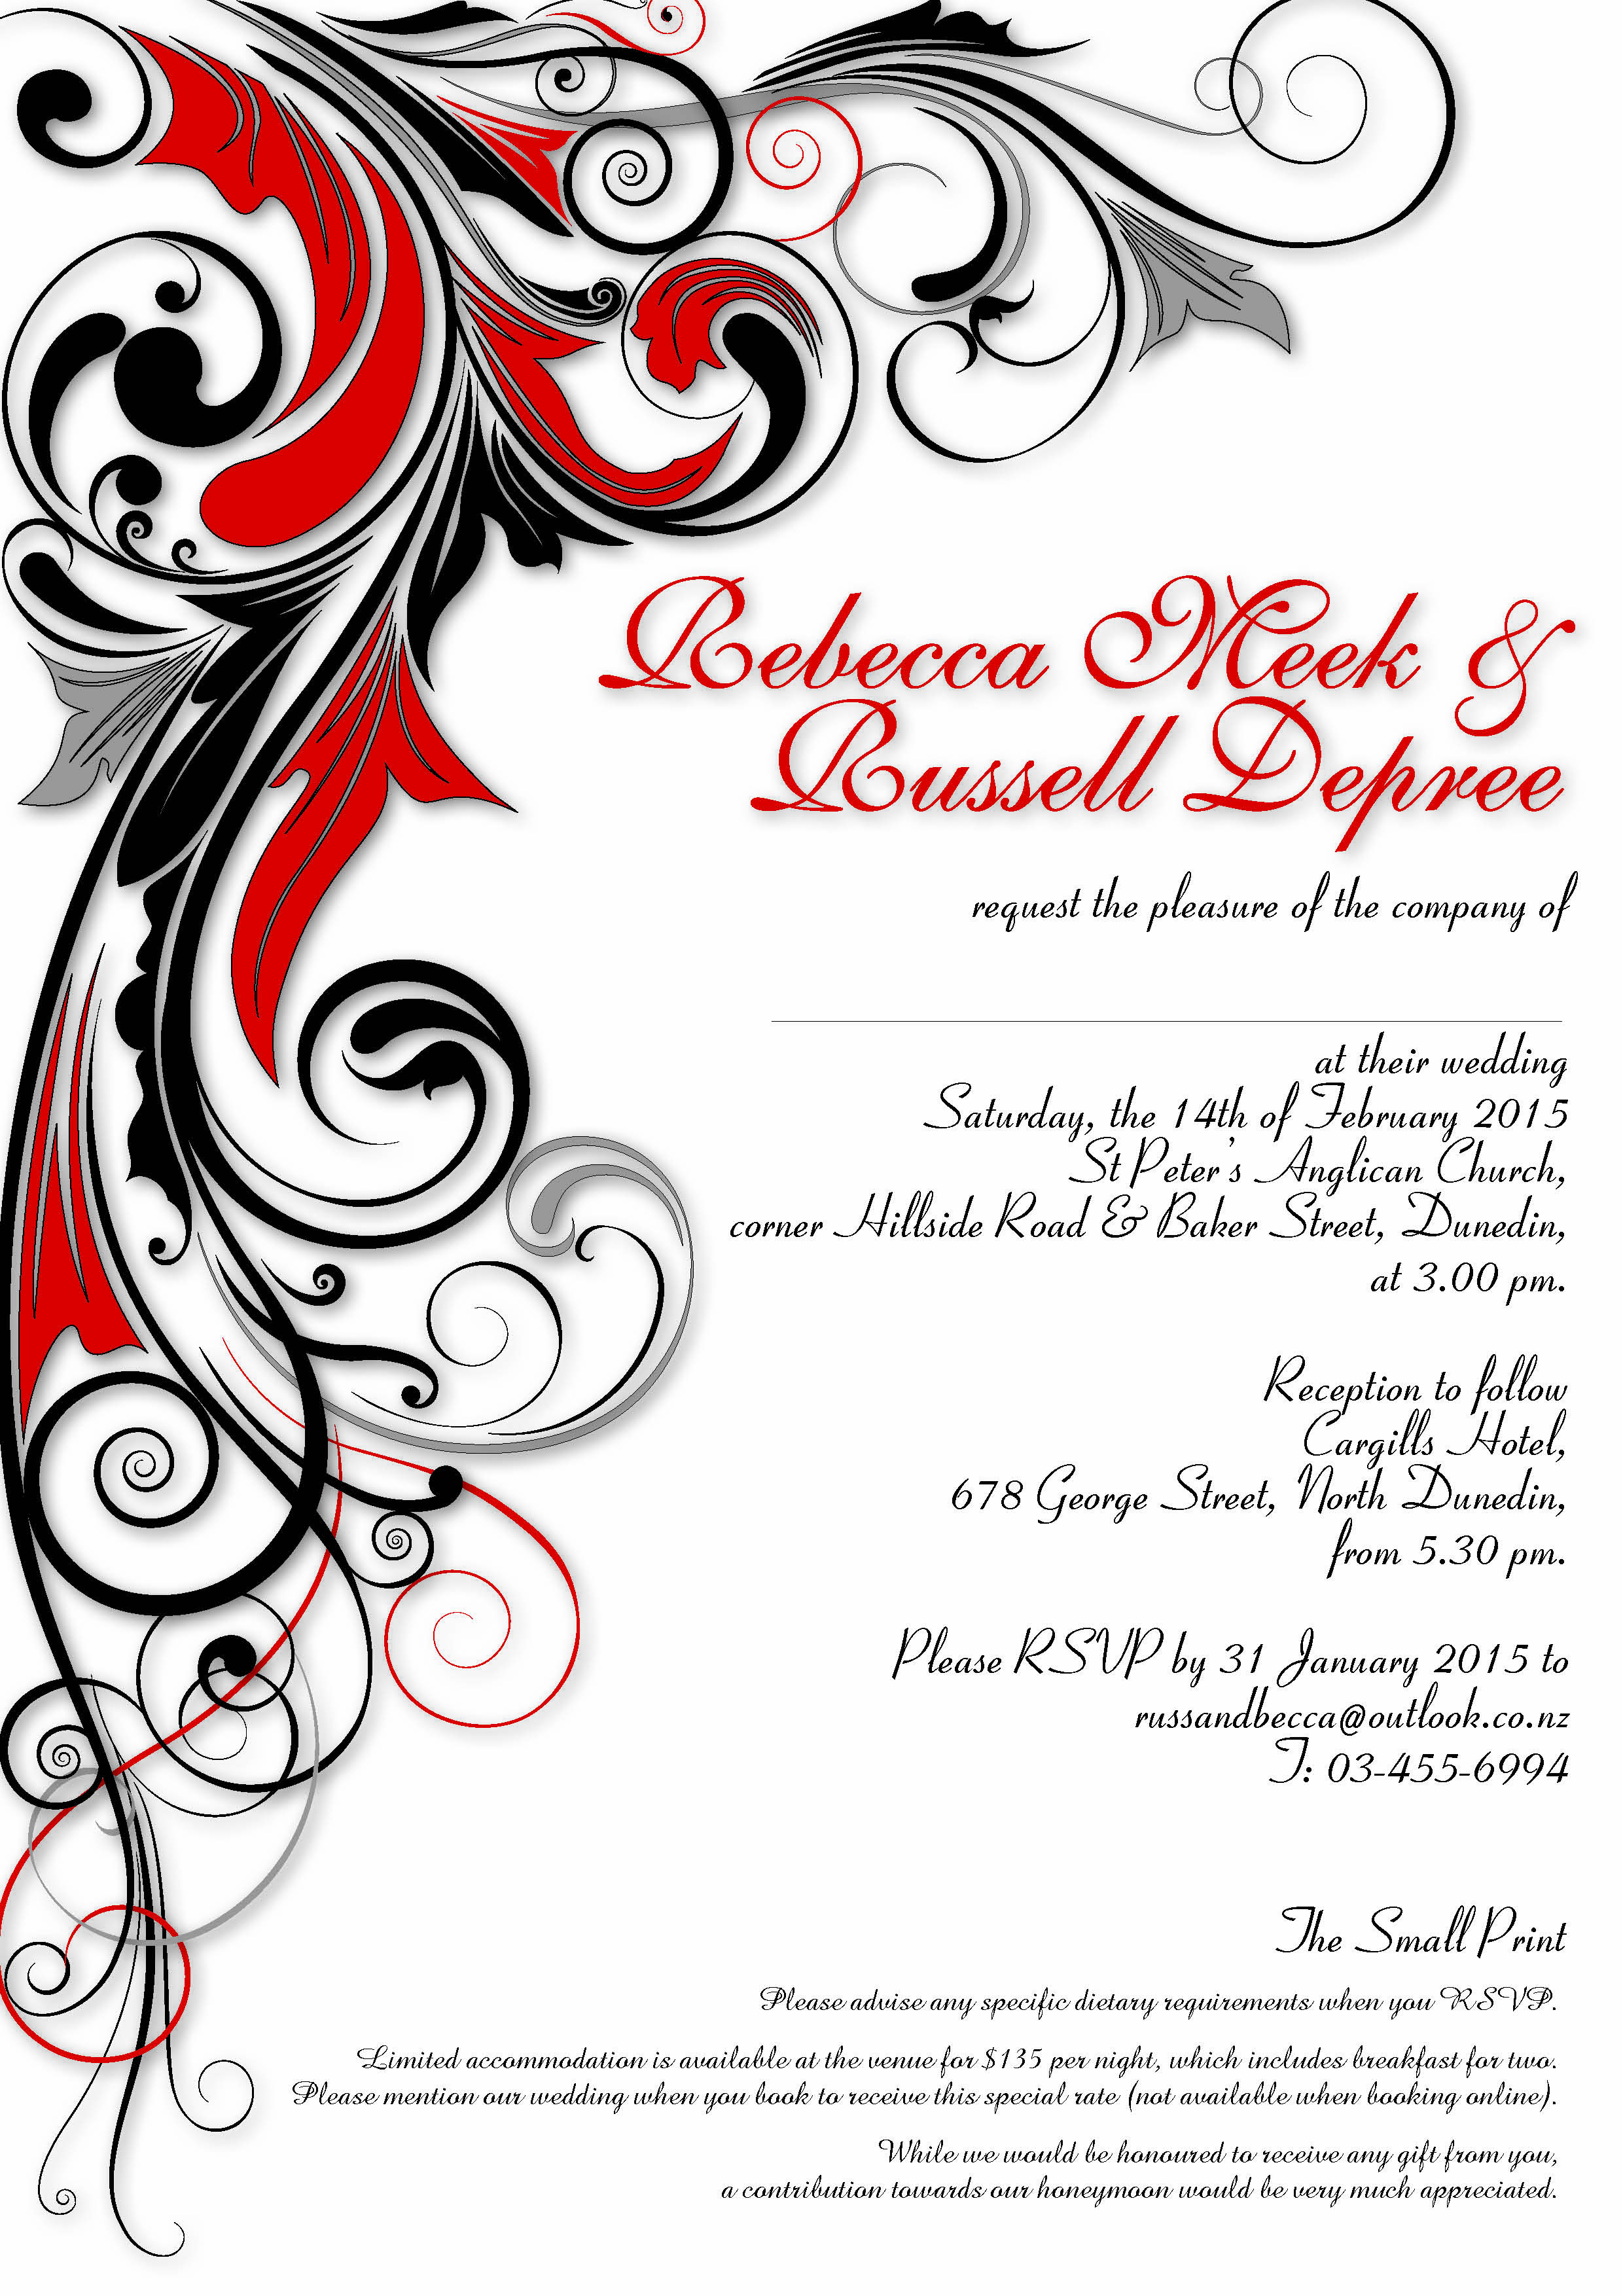 29099 Wedding Invites.jpg